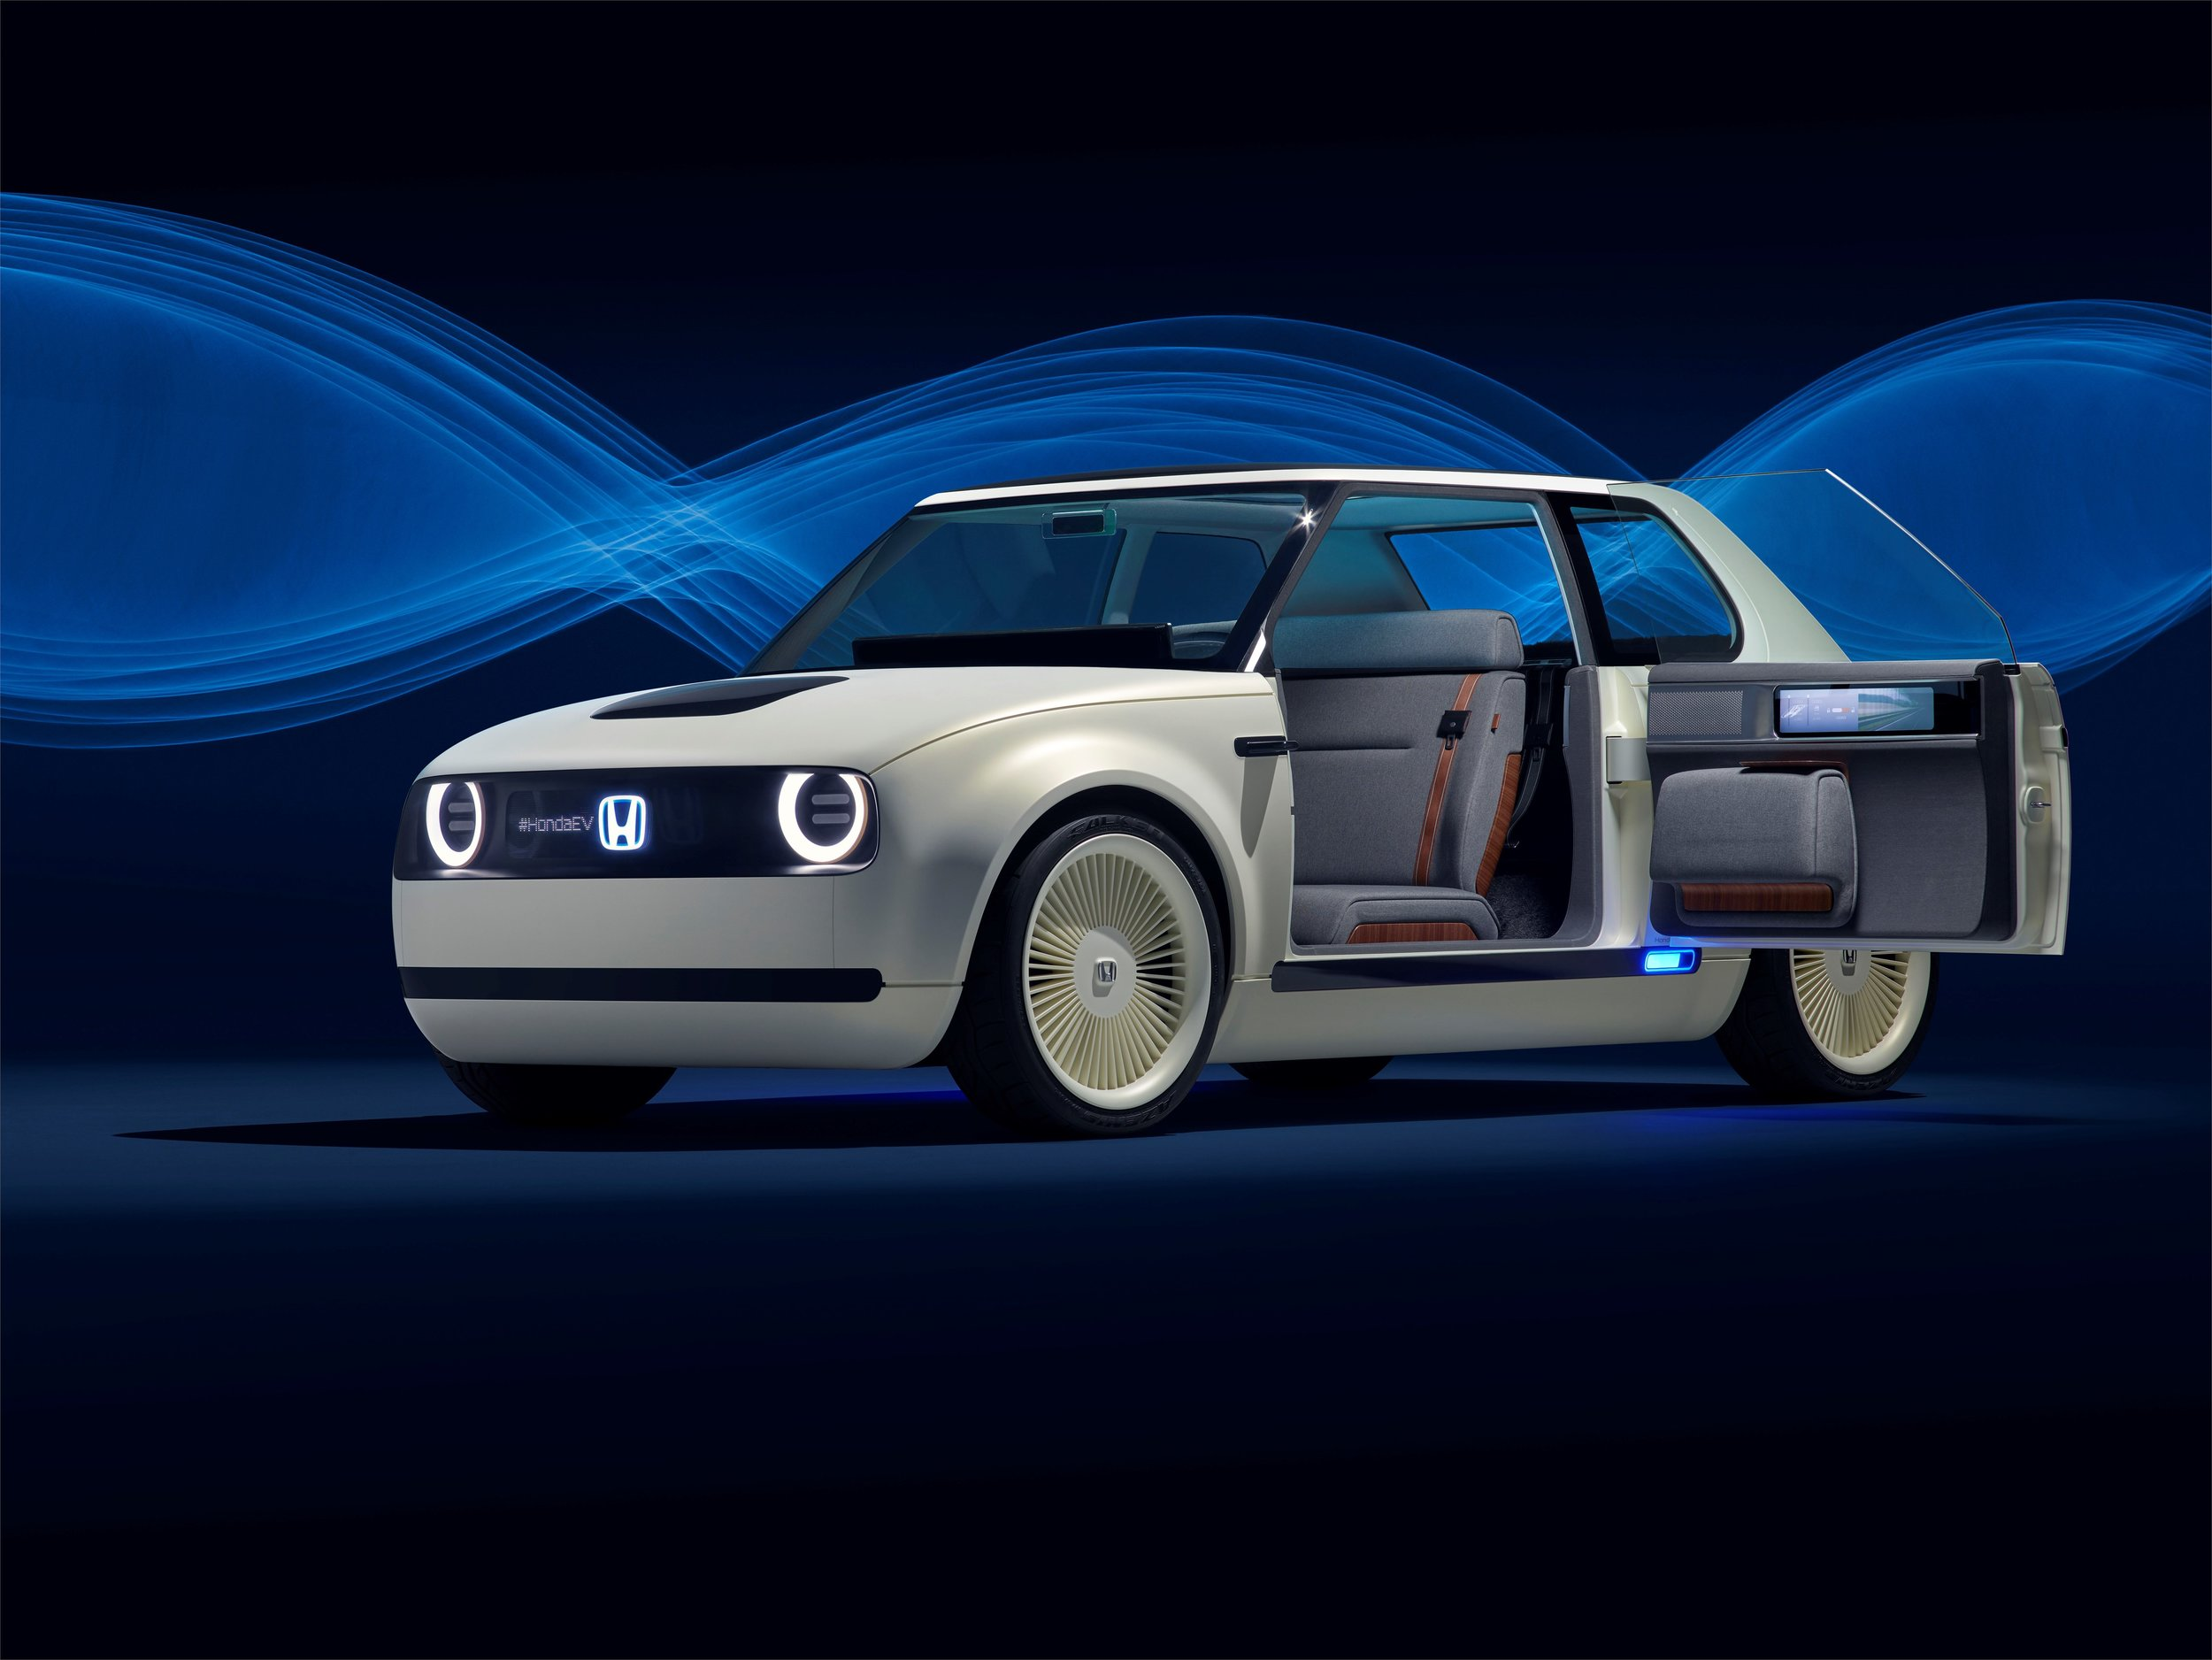 113865_Honda_Urban_EV_Concept_unveiled_at_the_Frankfurt_Motor_Show.jpg